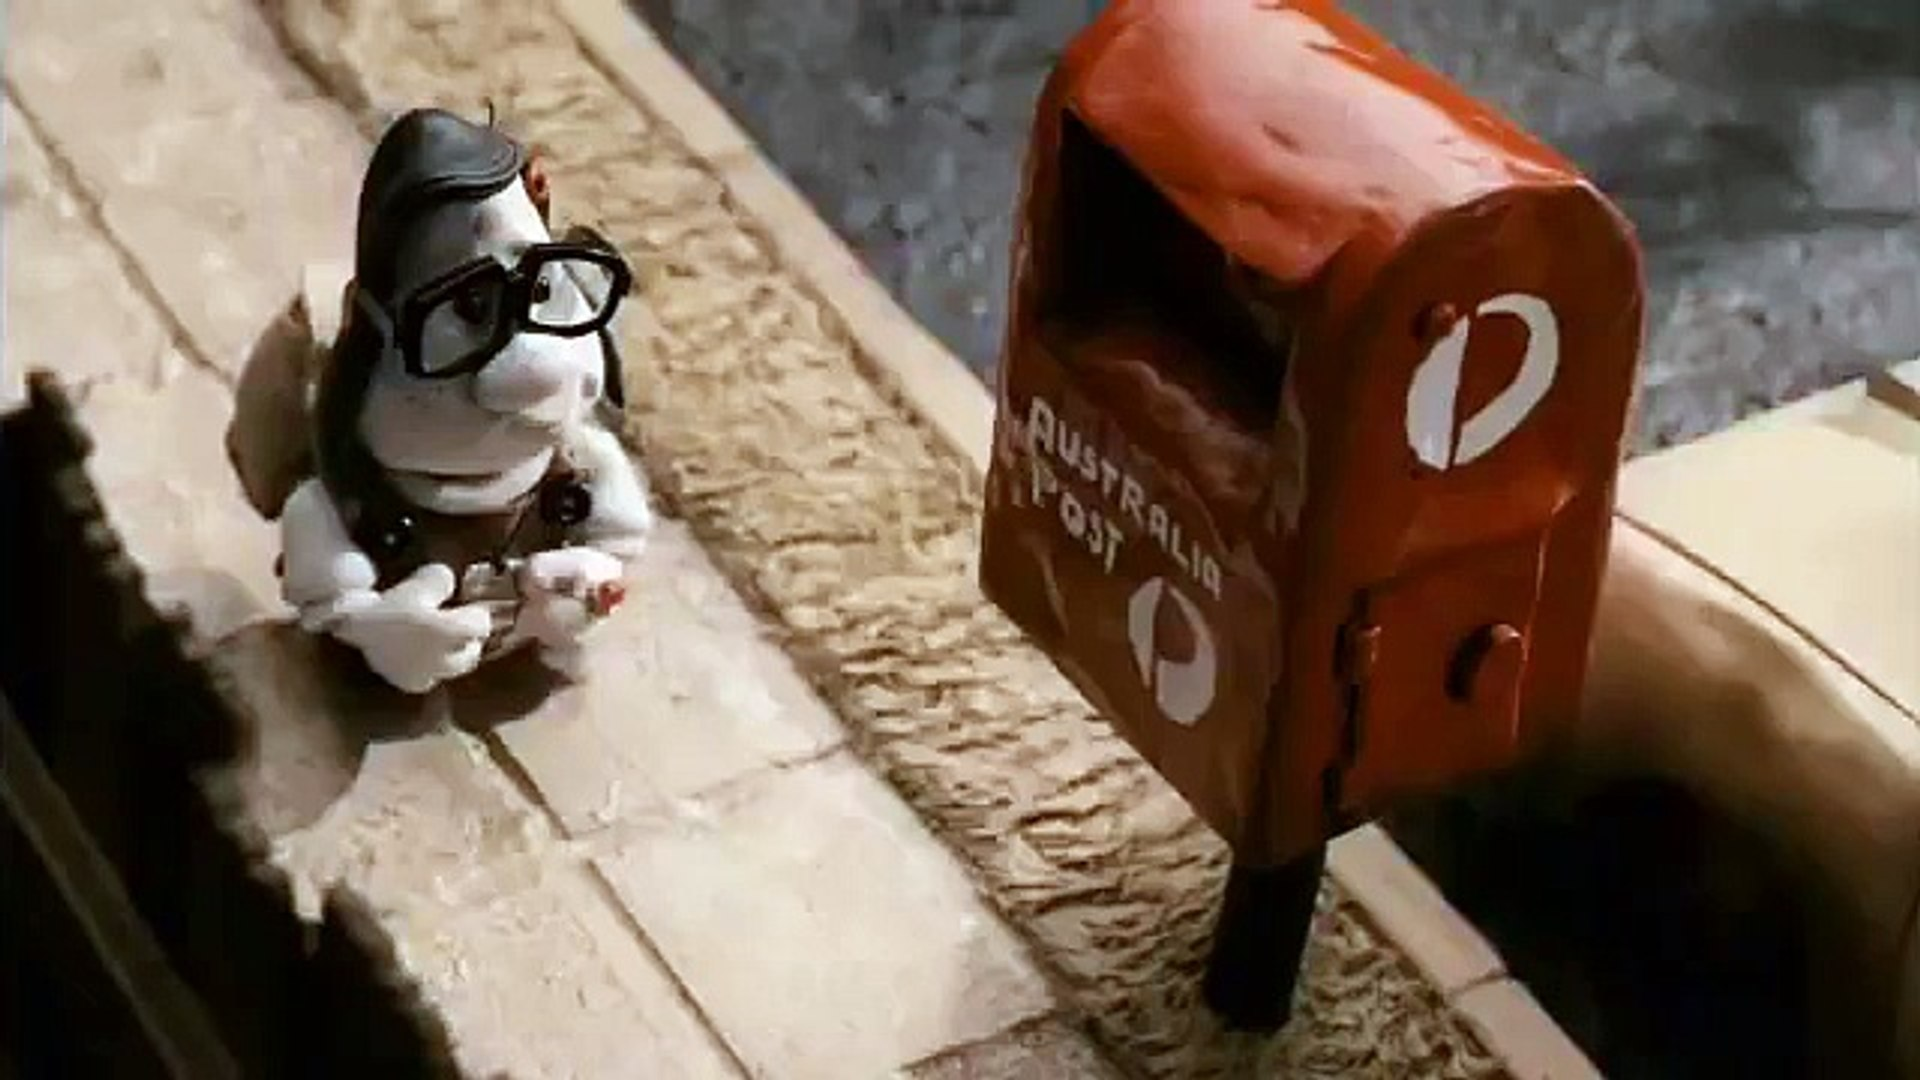 Mary Max Official Trailer Mary And Max Mary Ve Max Trailer Hd Adam Elliot Toni Collette Philip Seymour Hoffman Eric Bana Dailymotion Video